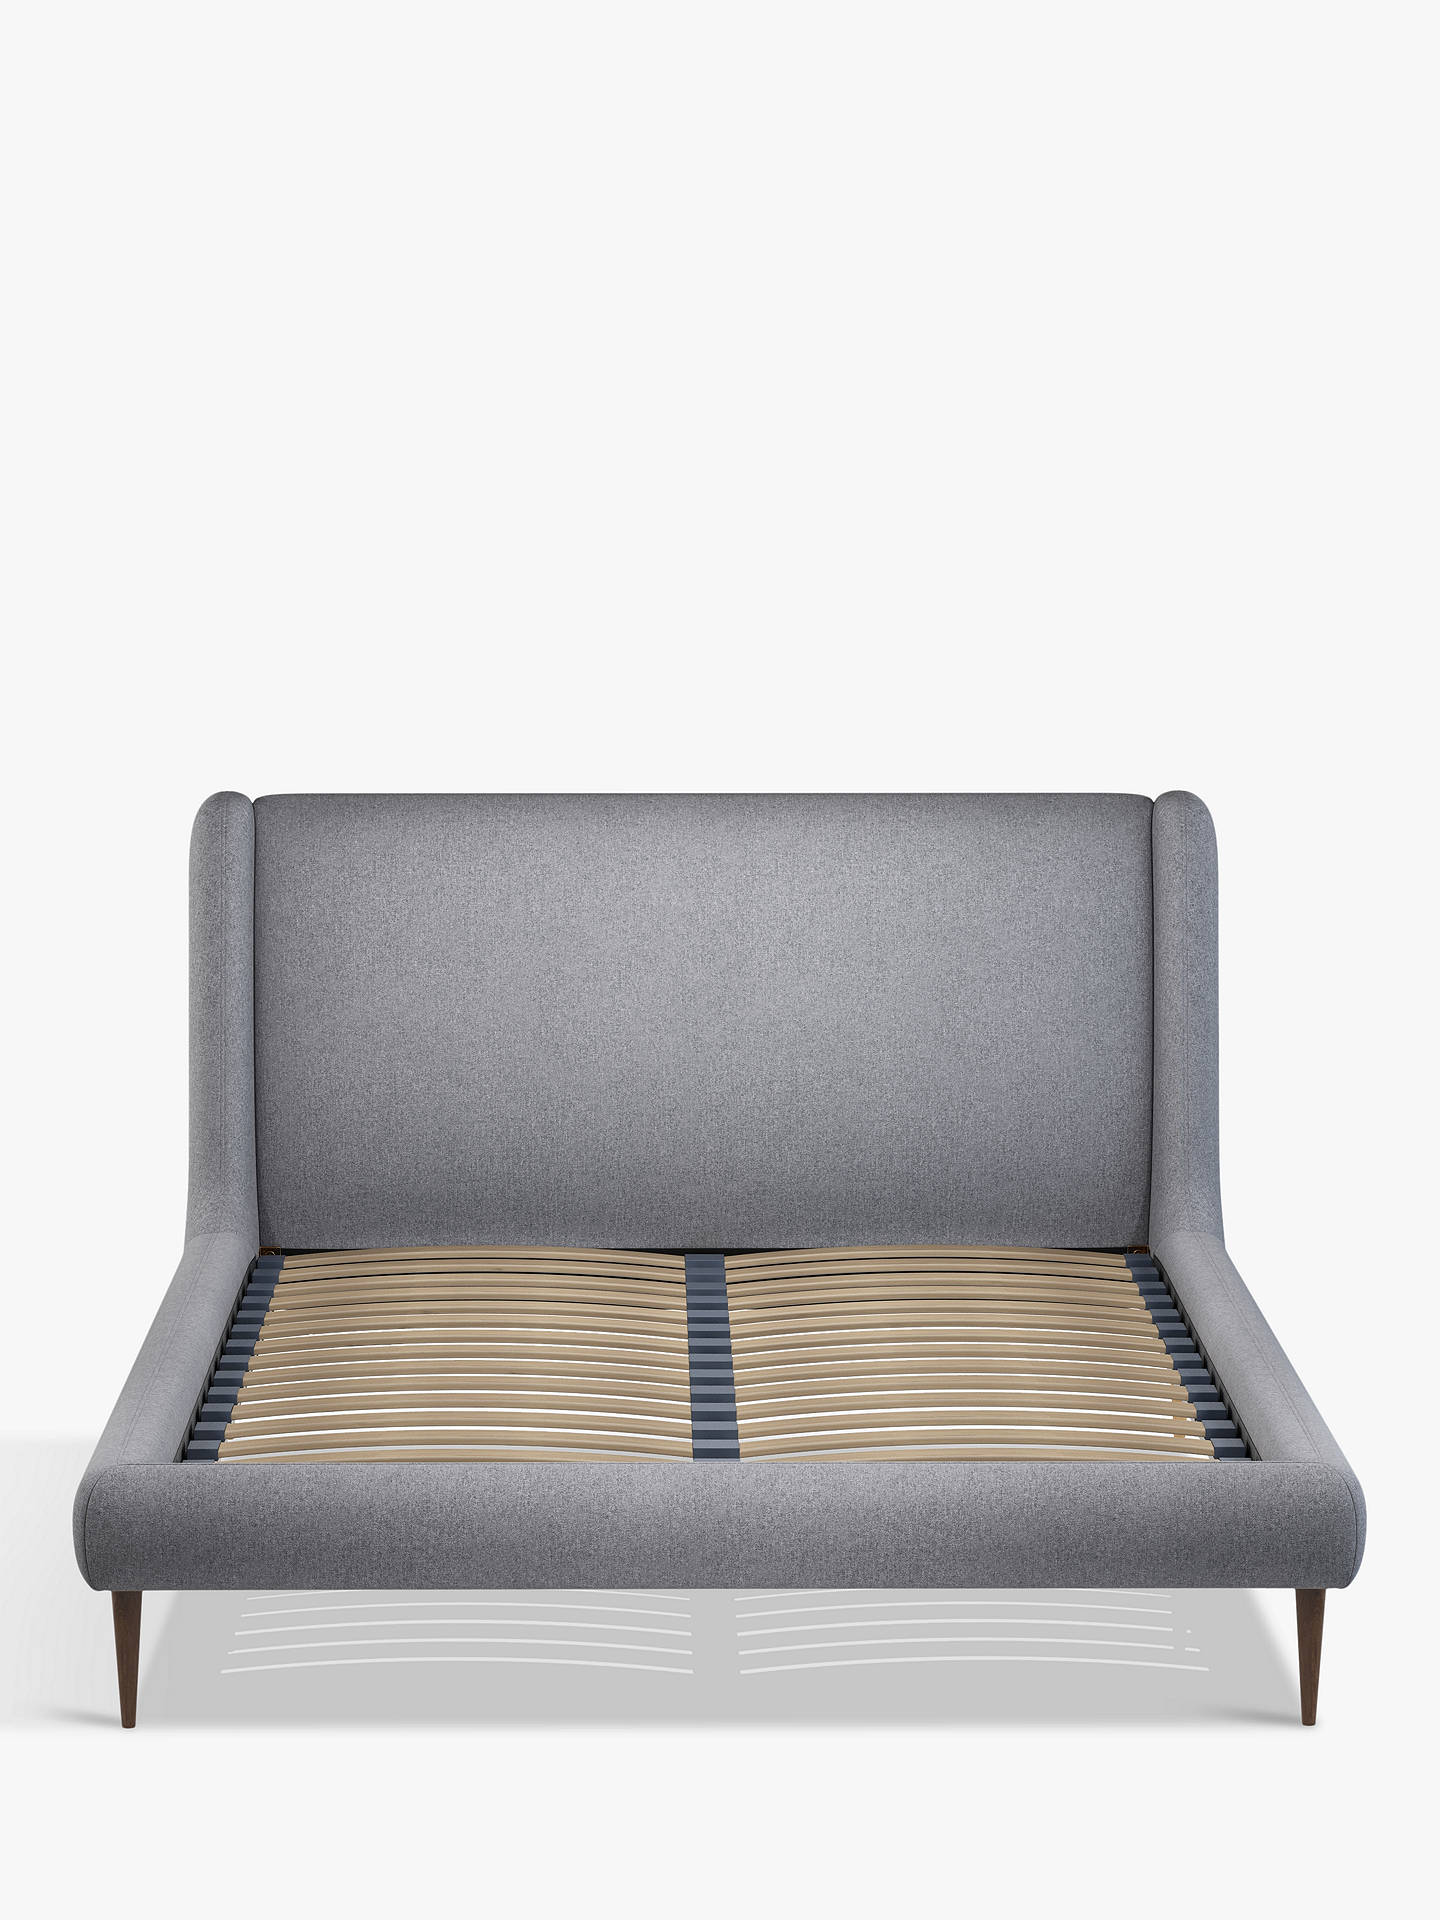 Buy John Lewis & Partners Mid-Century Sweep Upholstered Bed Frame, Double, Saga Grey Online at johnlewis.com